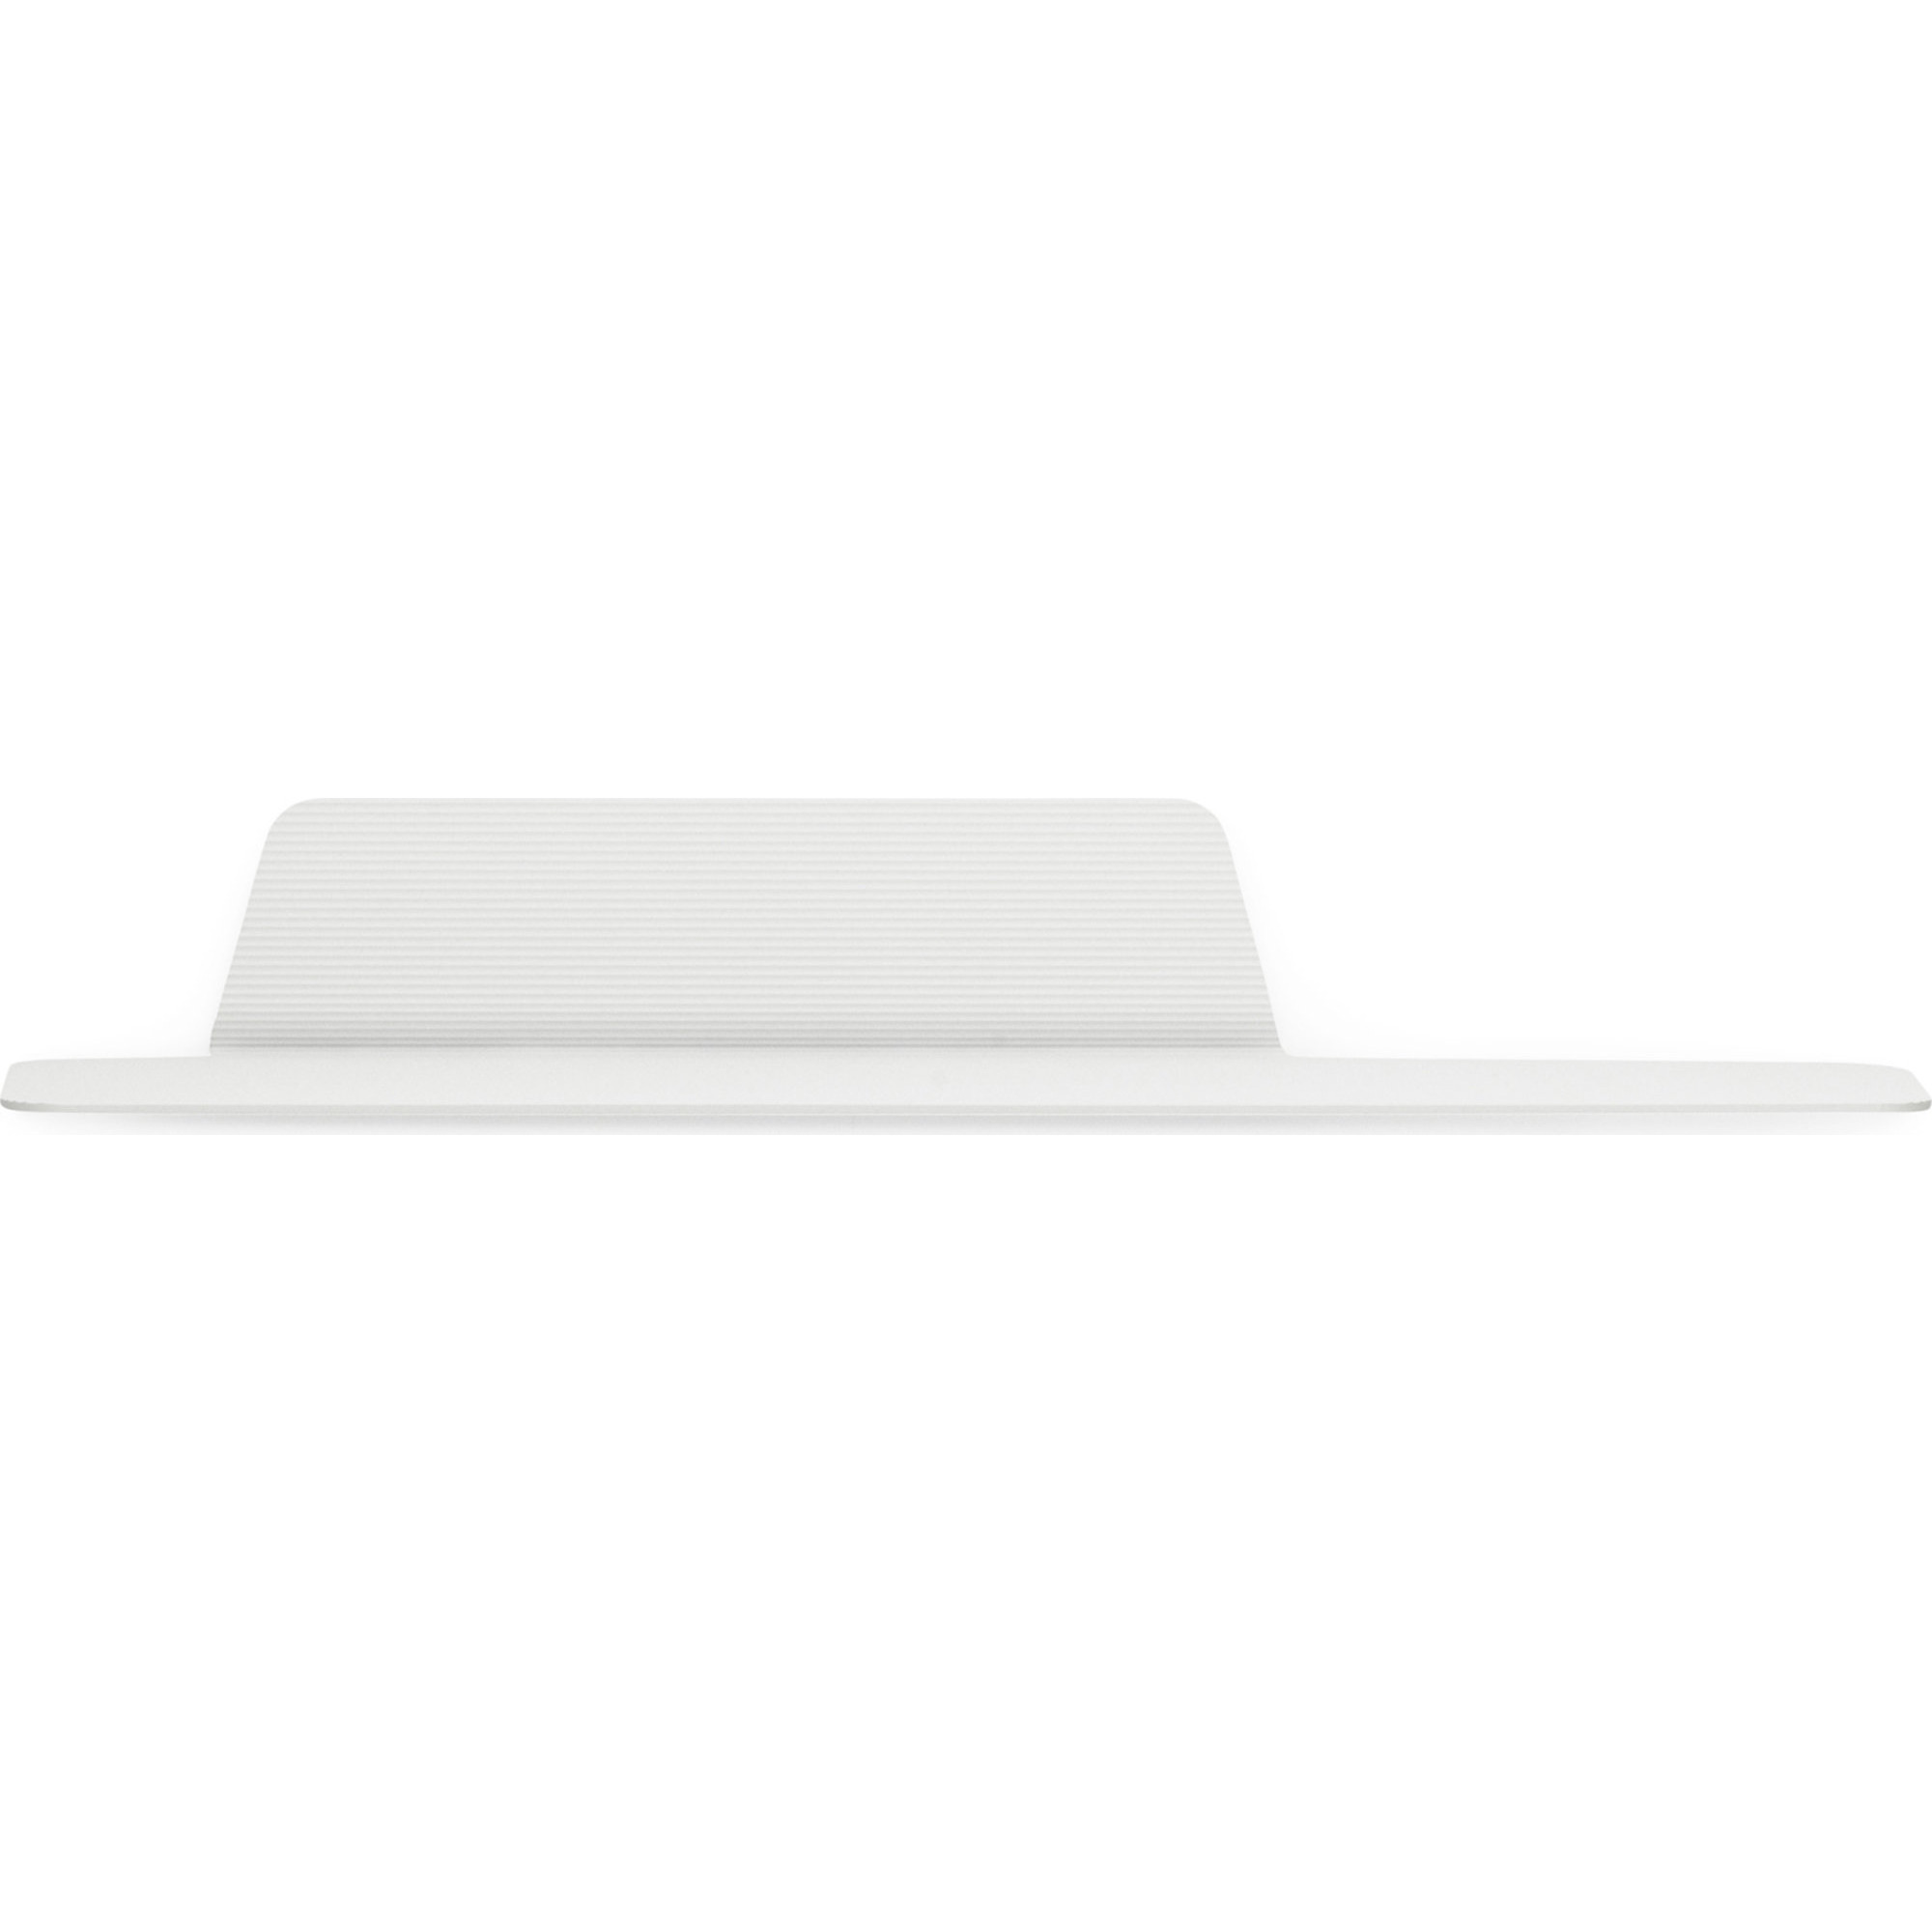 Normann Copenhagen Jet Shelf 80 cm White